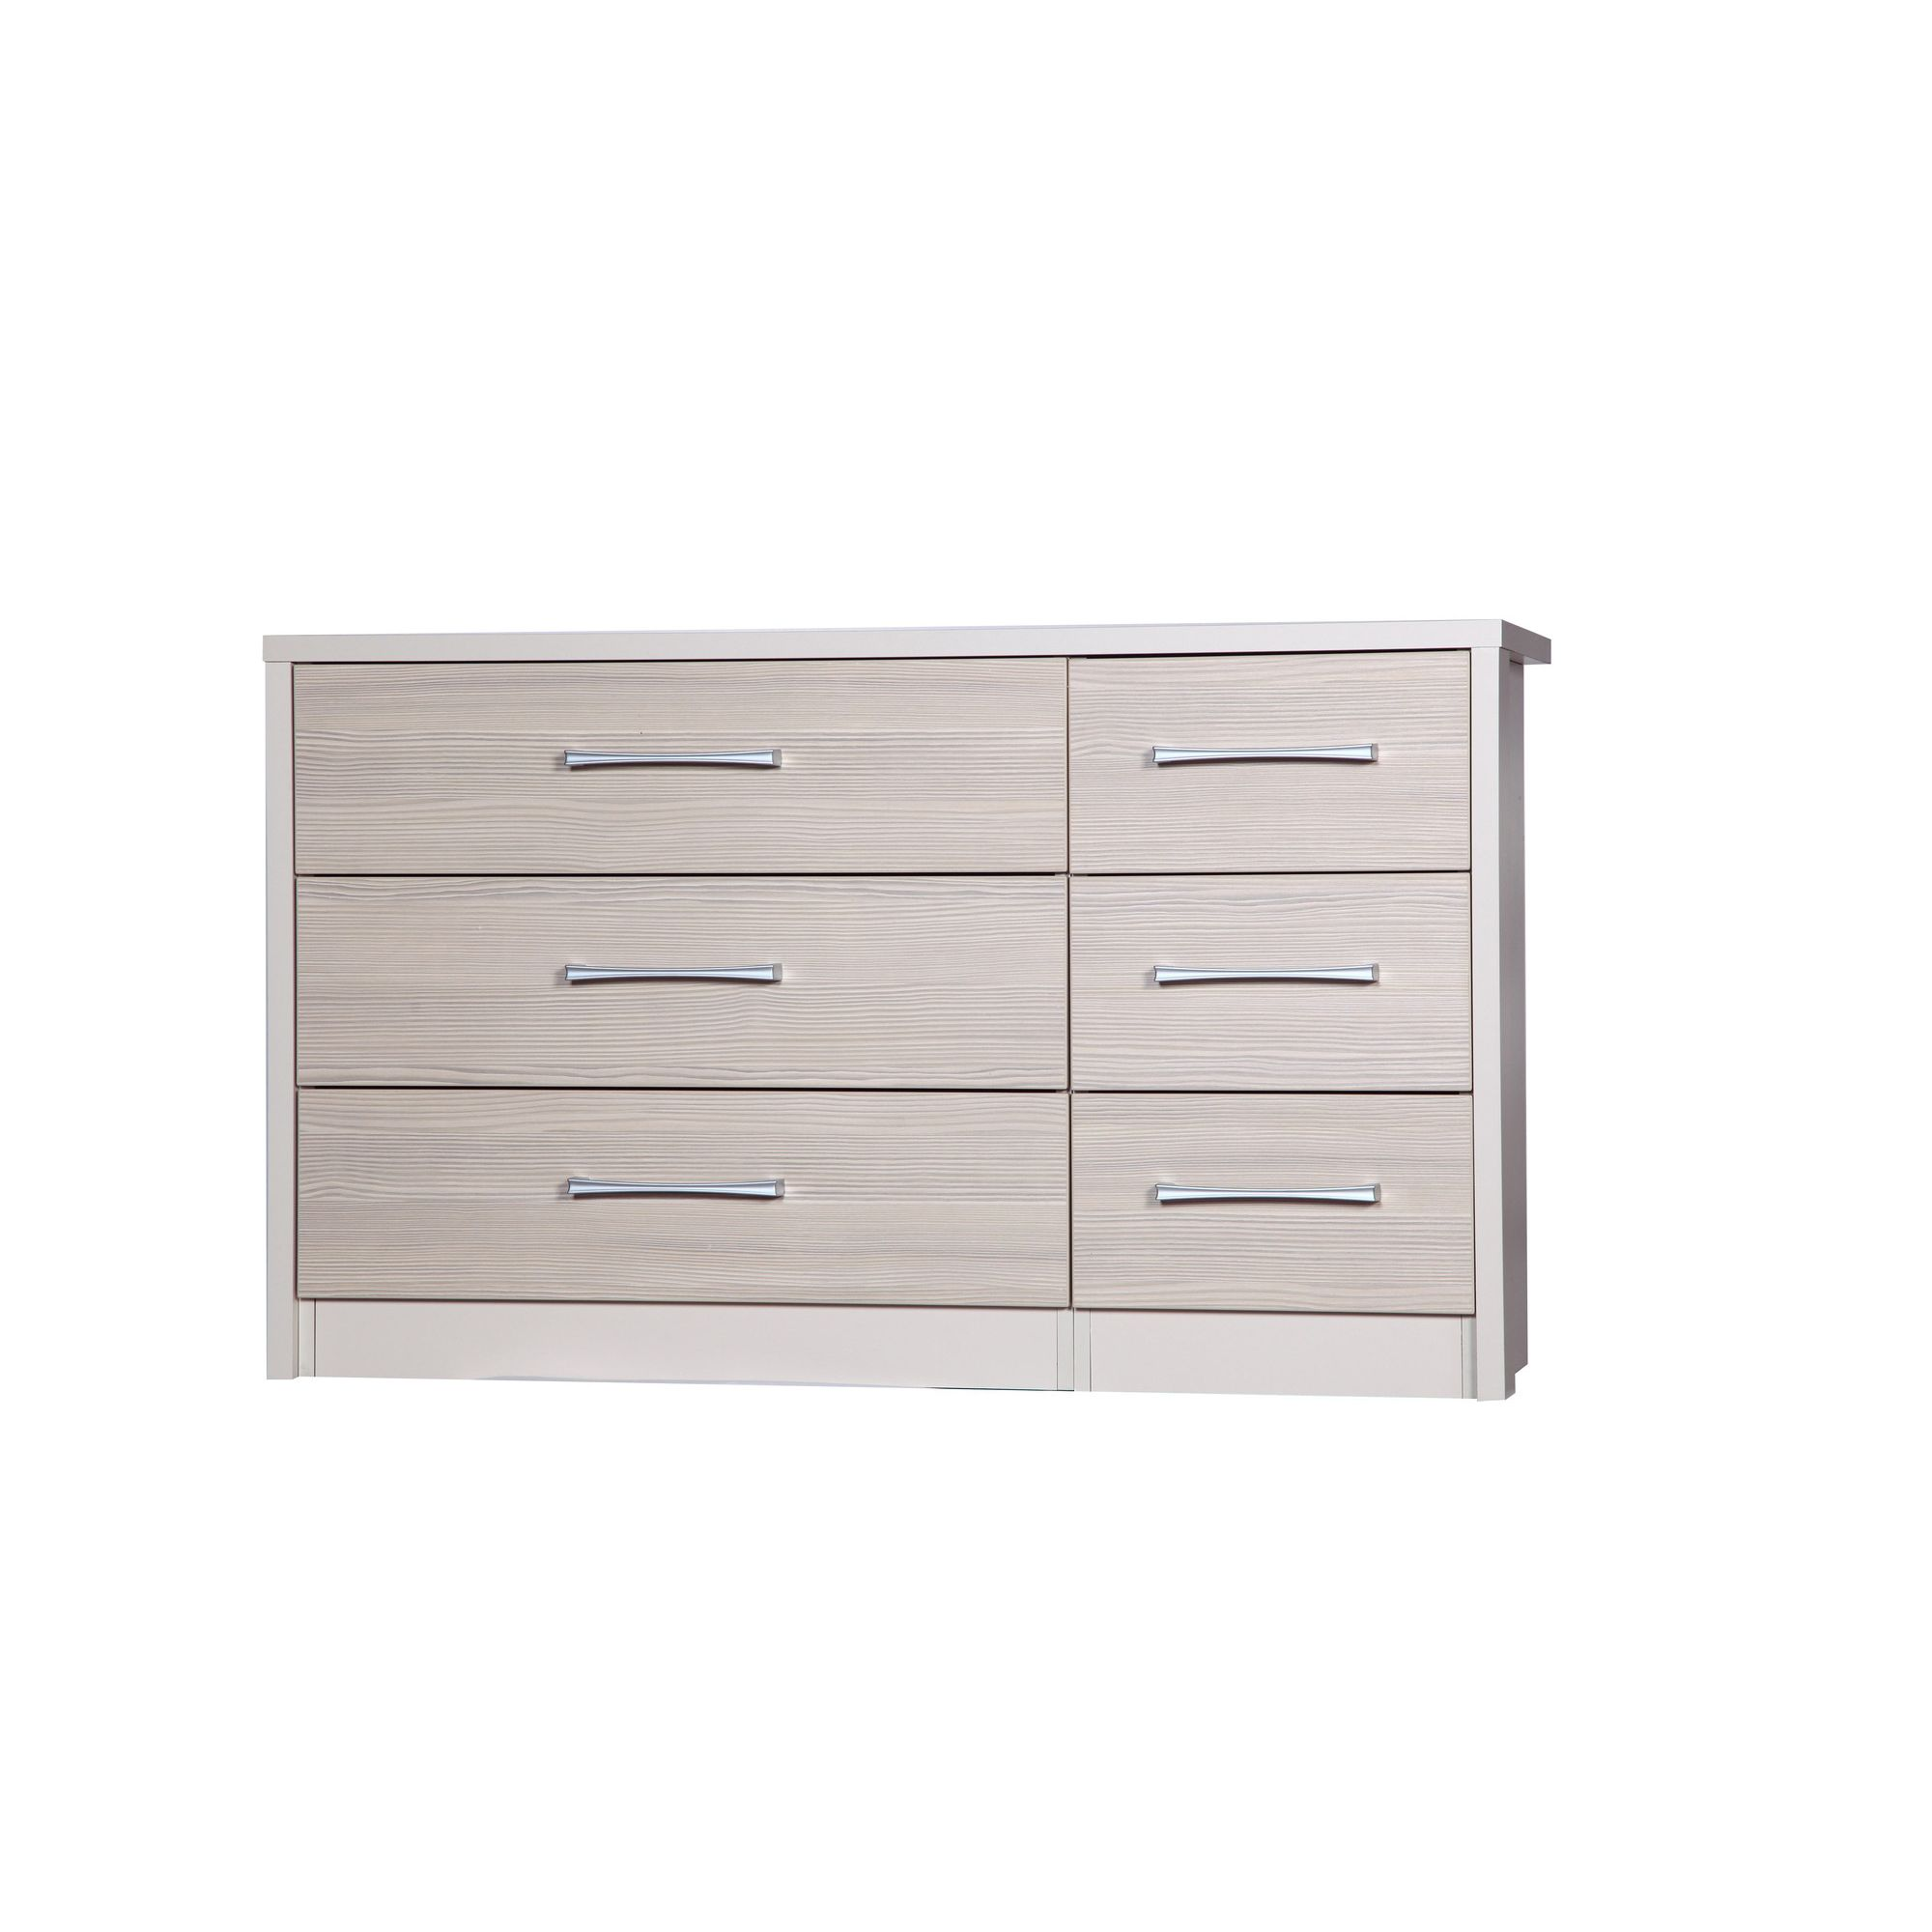 Alto Furniture Avola 6 Drawer Double Chest - Cream Carcass With Champagne Avola at Tesco Direct